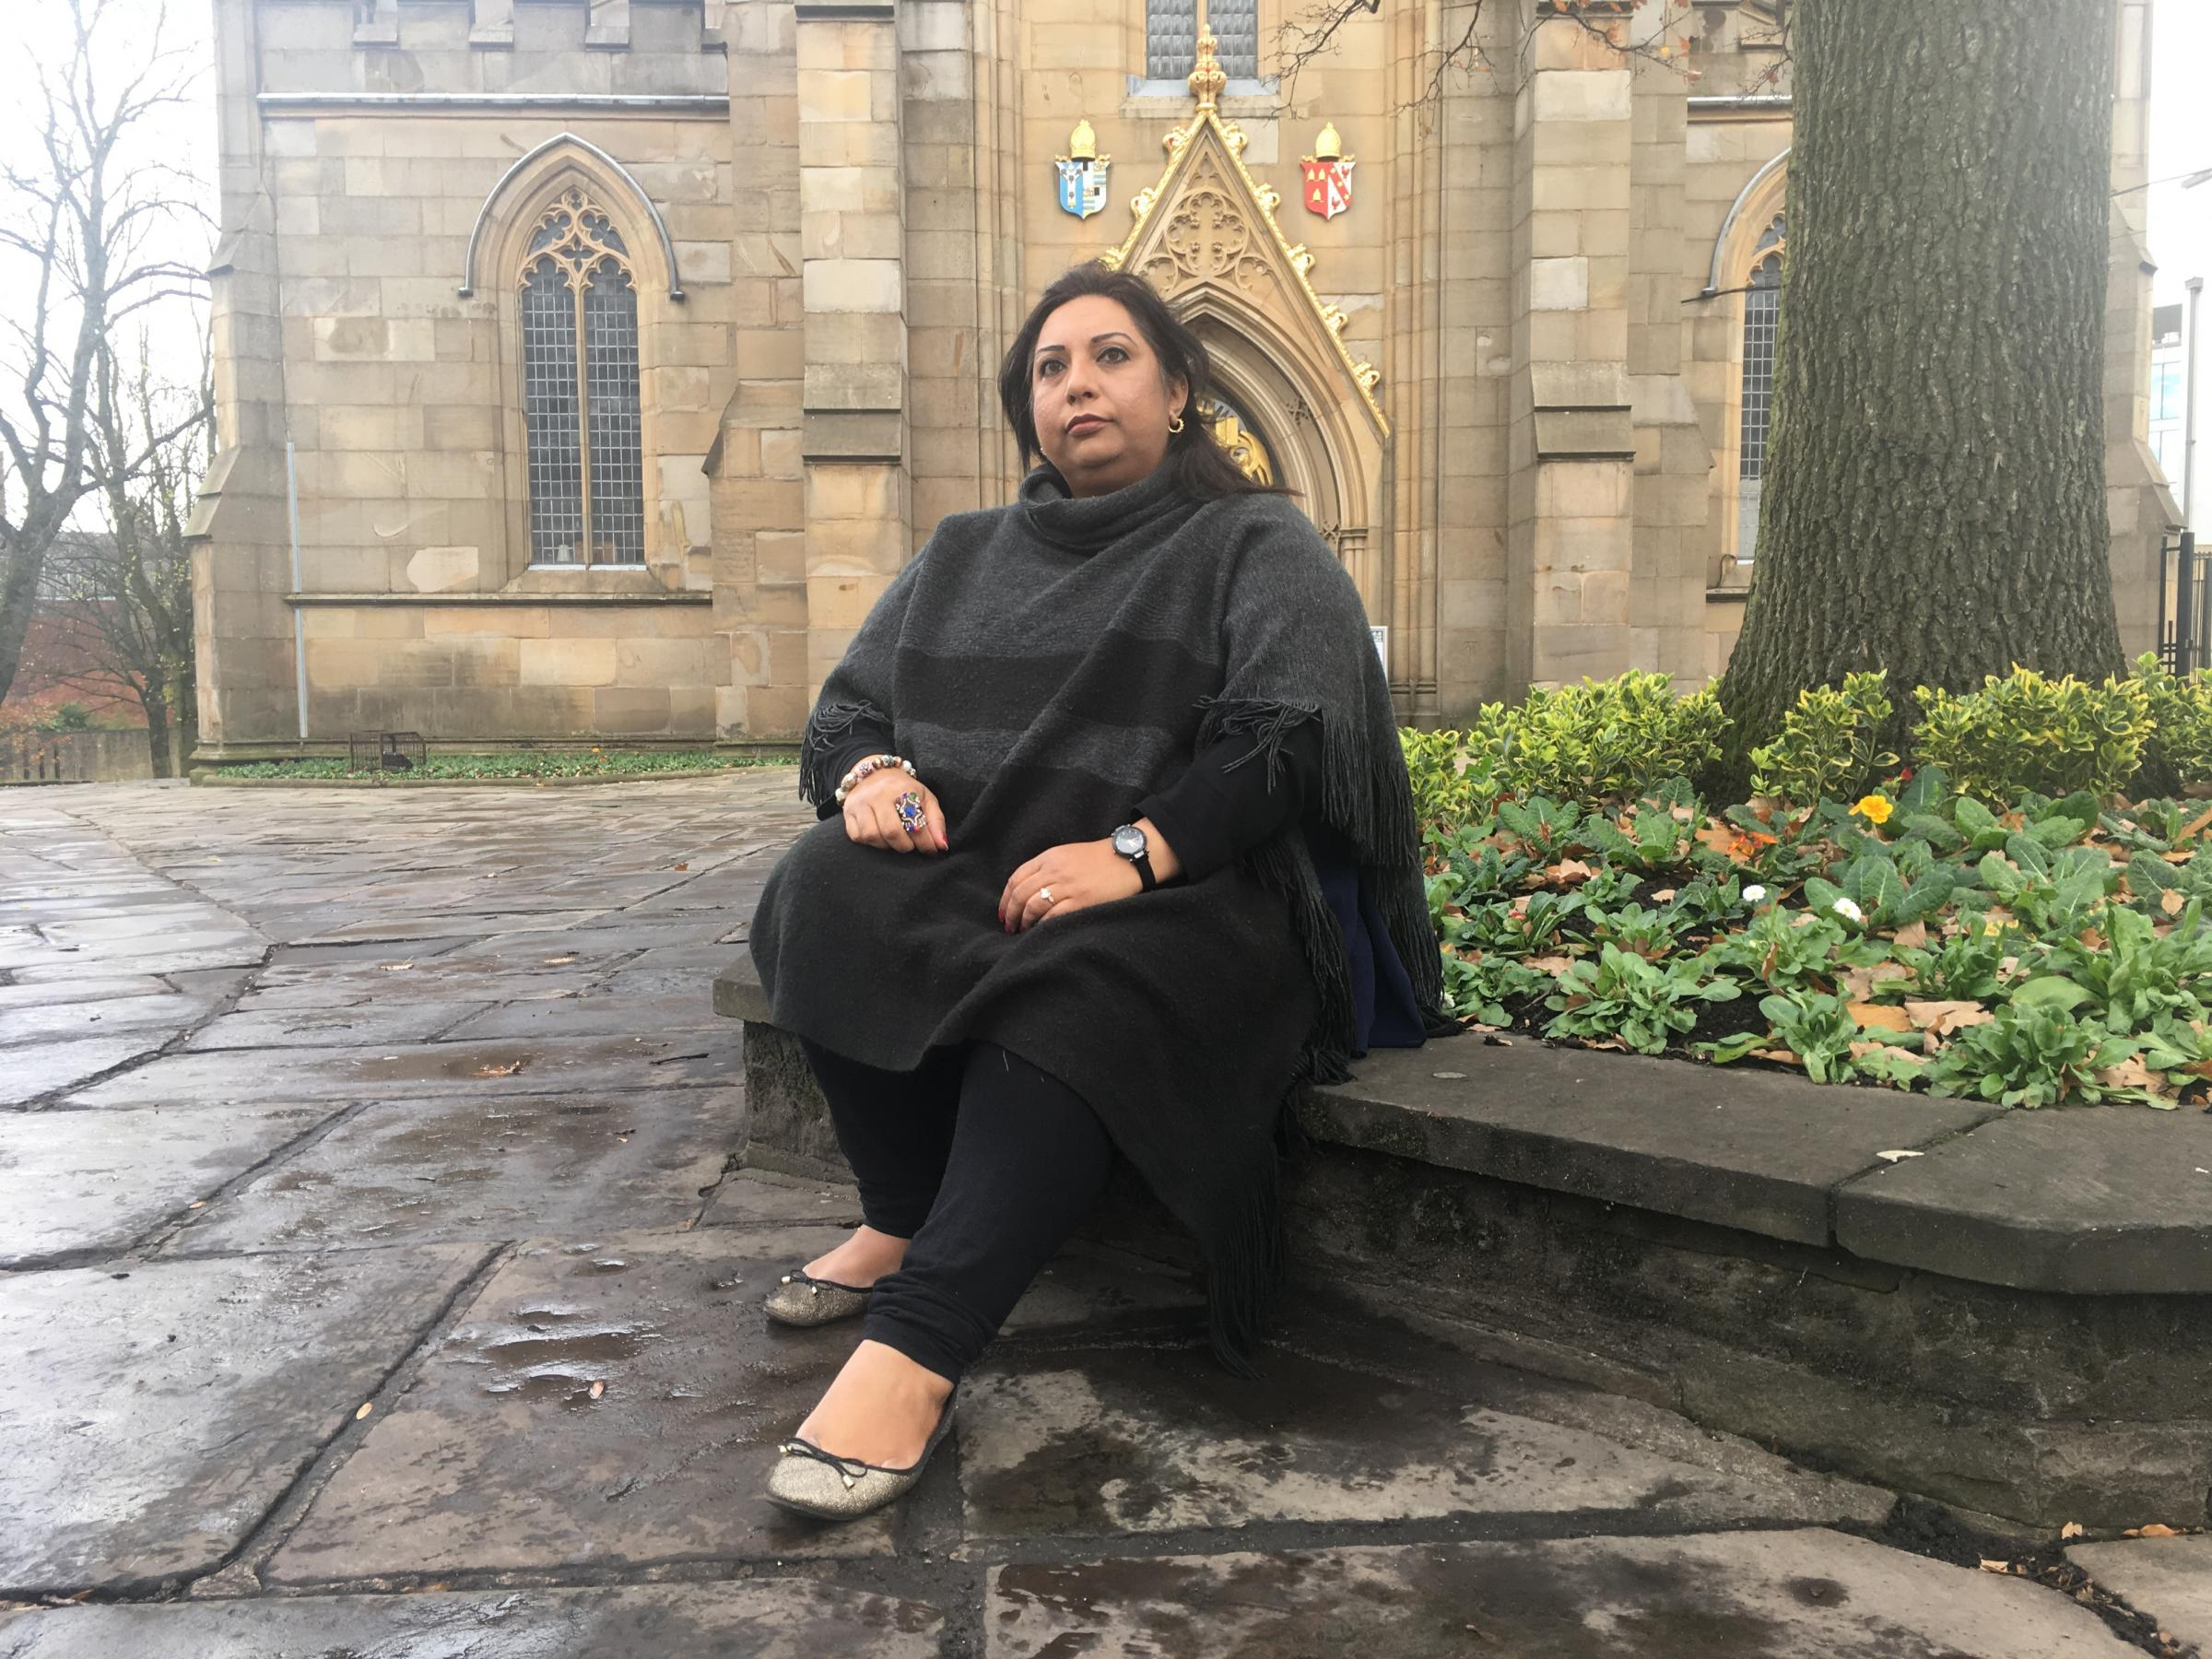 Samina Mahmood used her past experience to help run a group for women